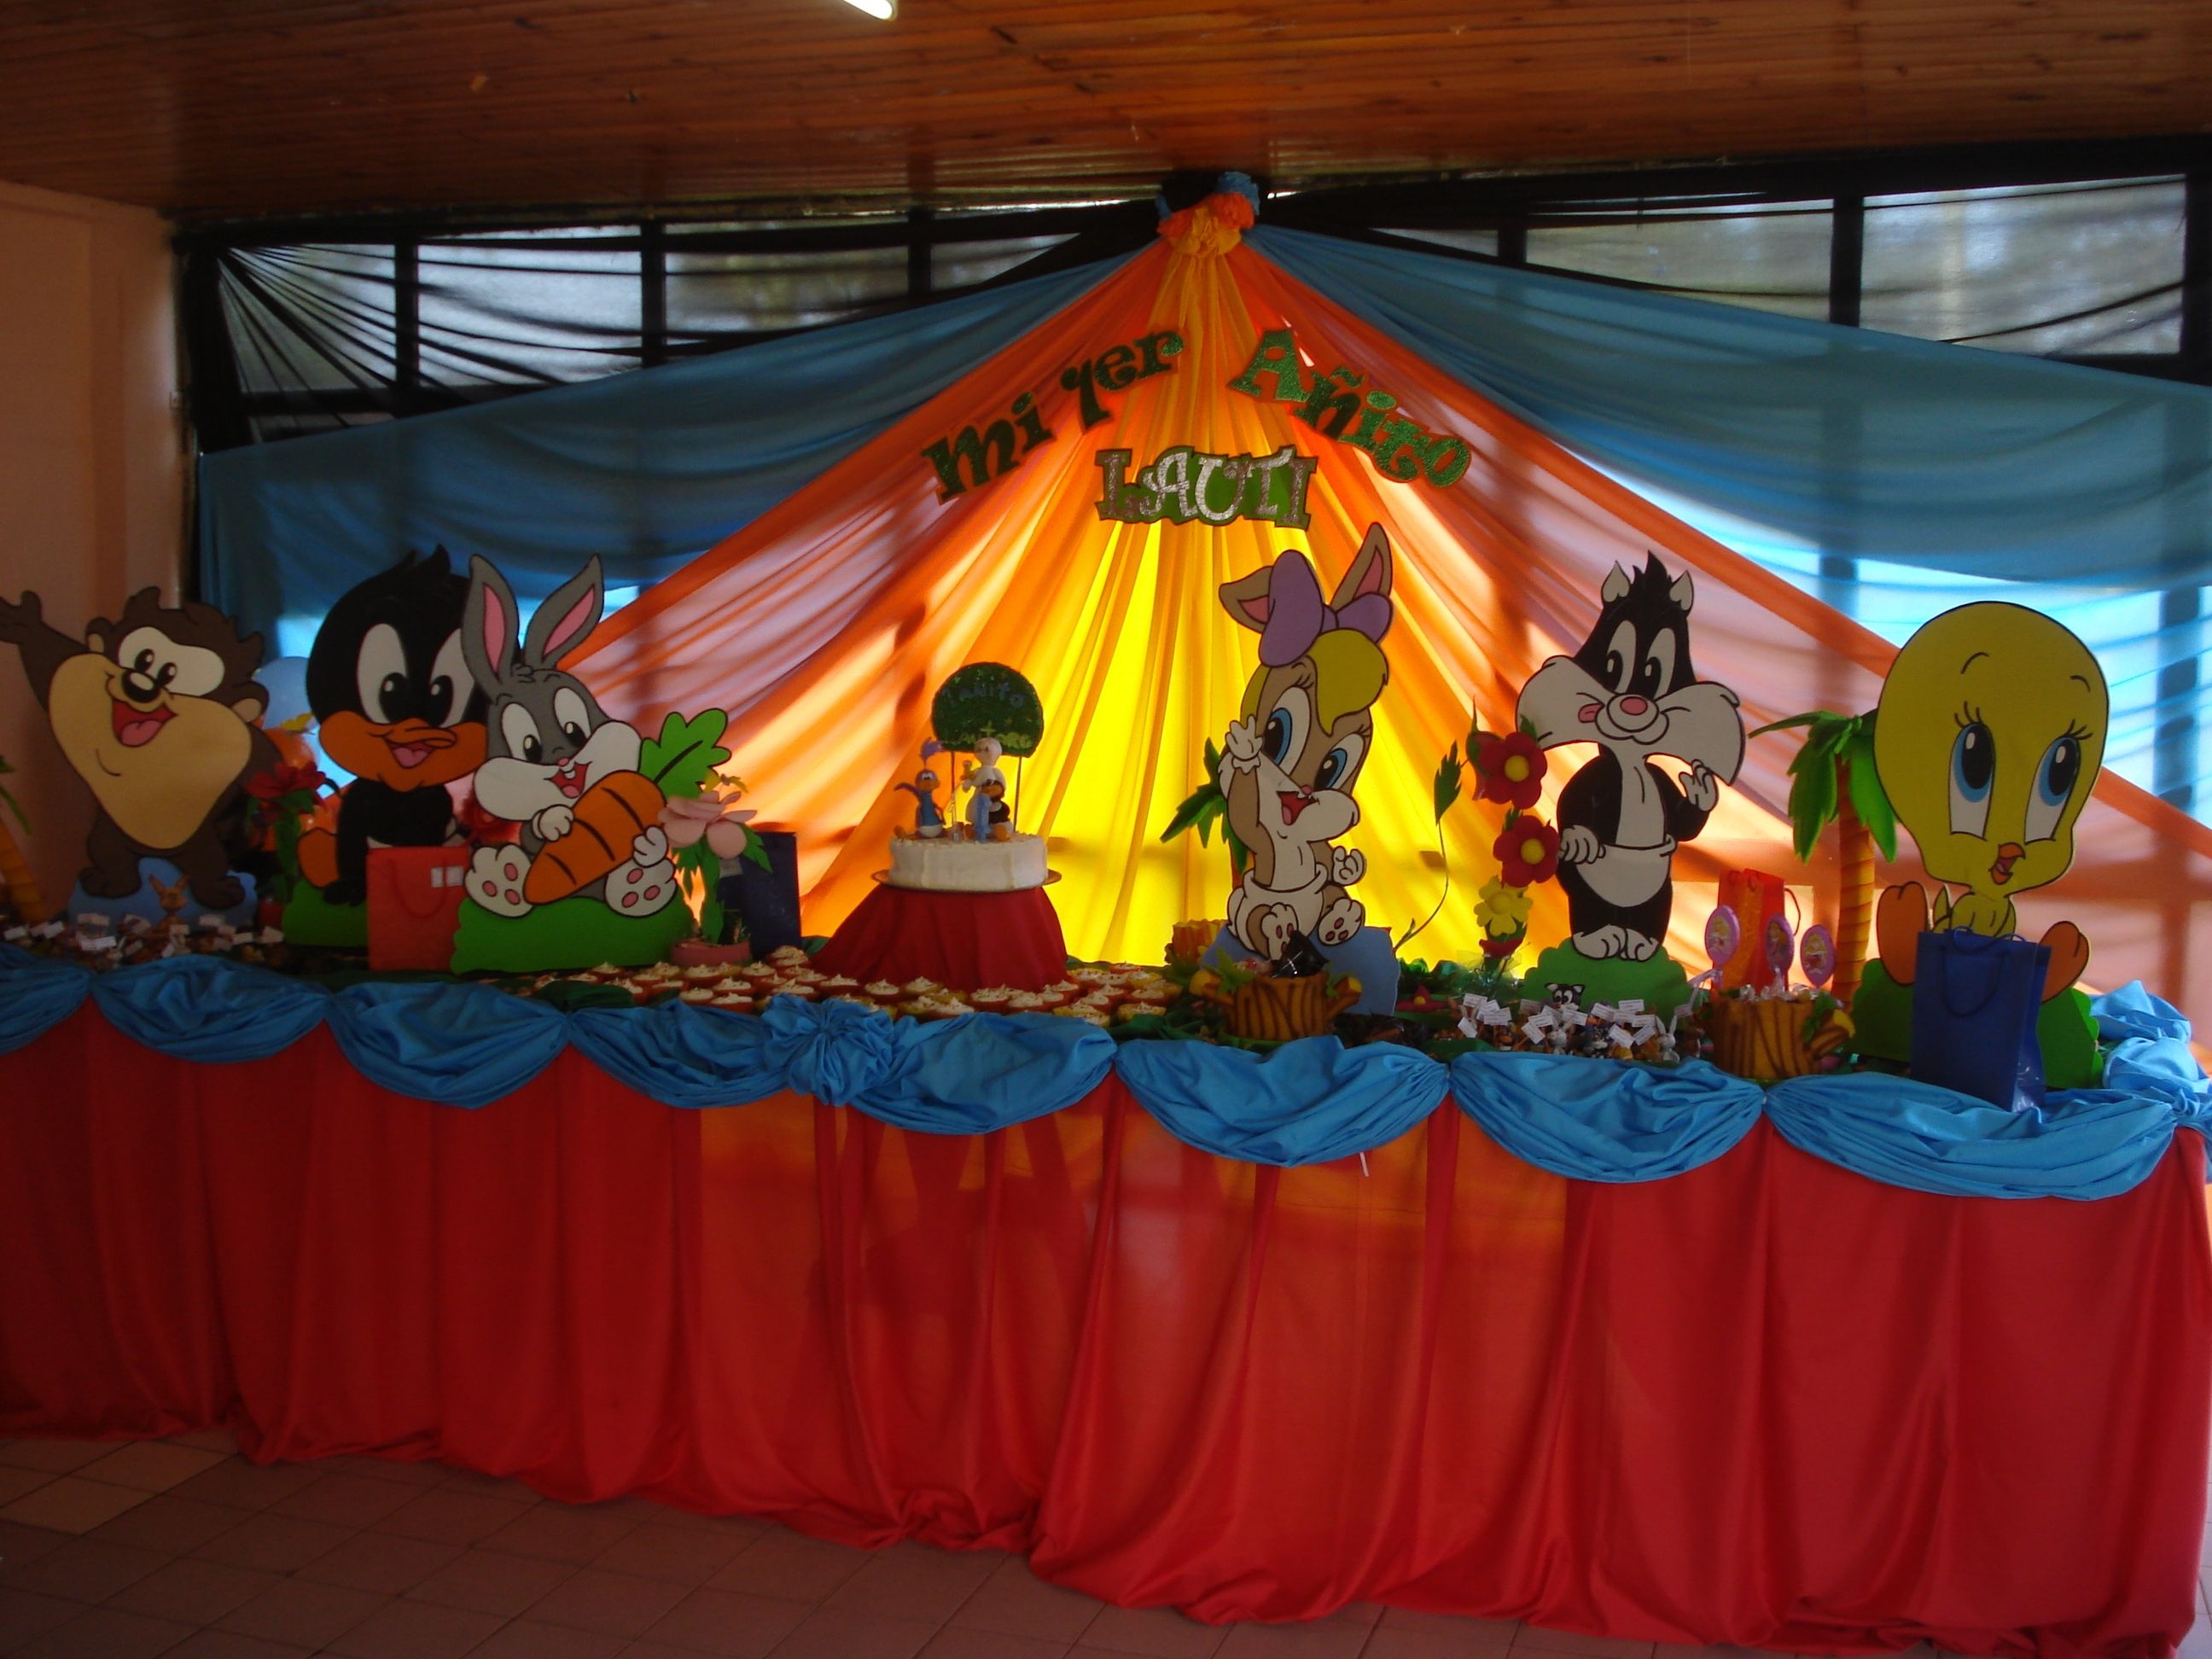 DECORACION DE LOS LOONEY TUNES BB - FIESTAIDEAS. | Looney Tunes ...